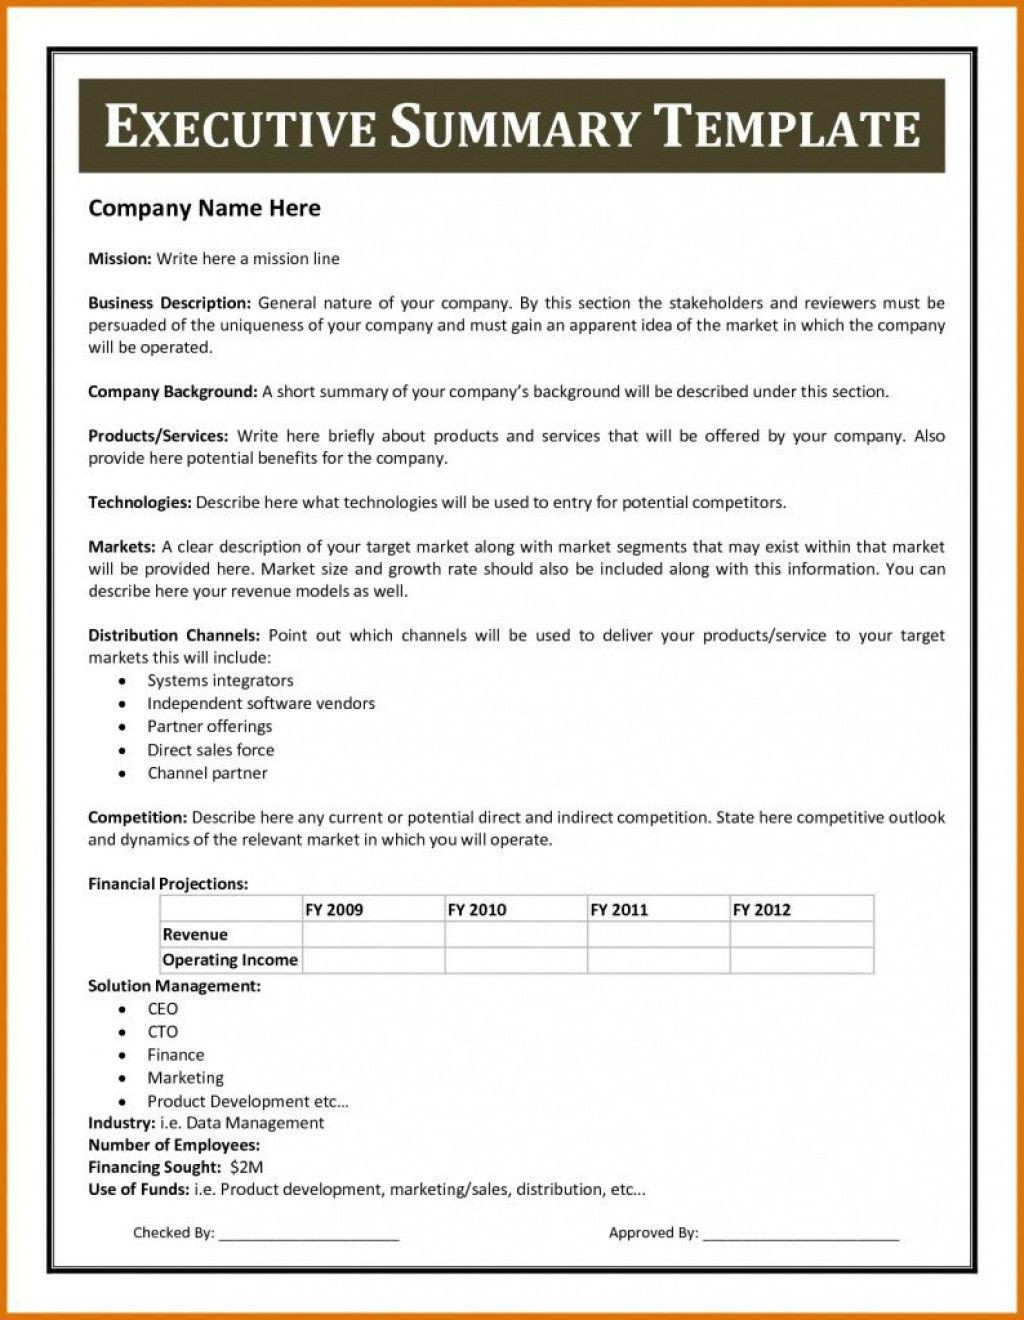 010 Wondrou Executive Summary Word Template Free Download Concept Large